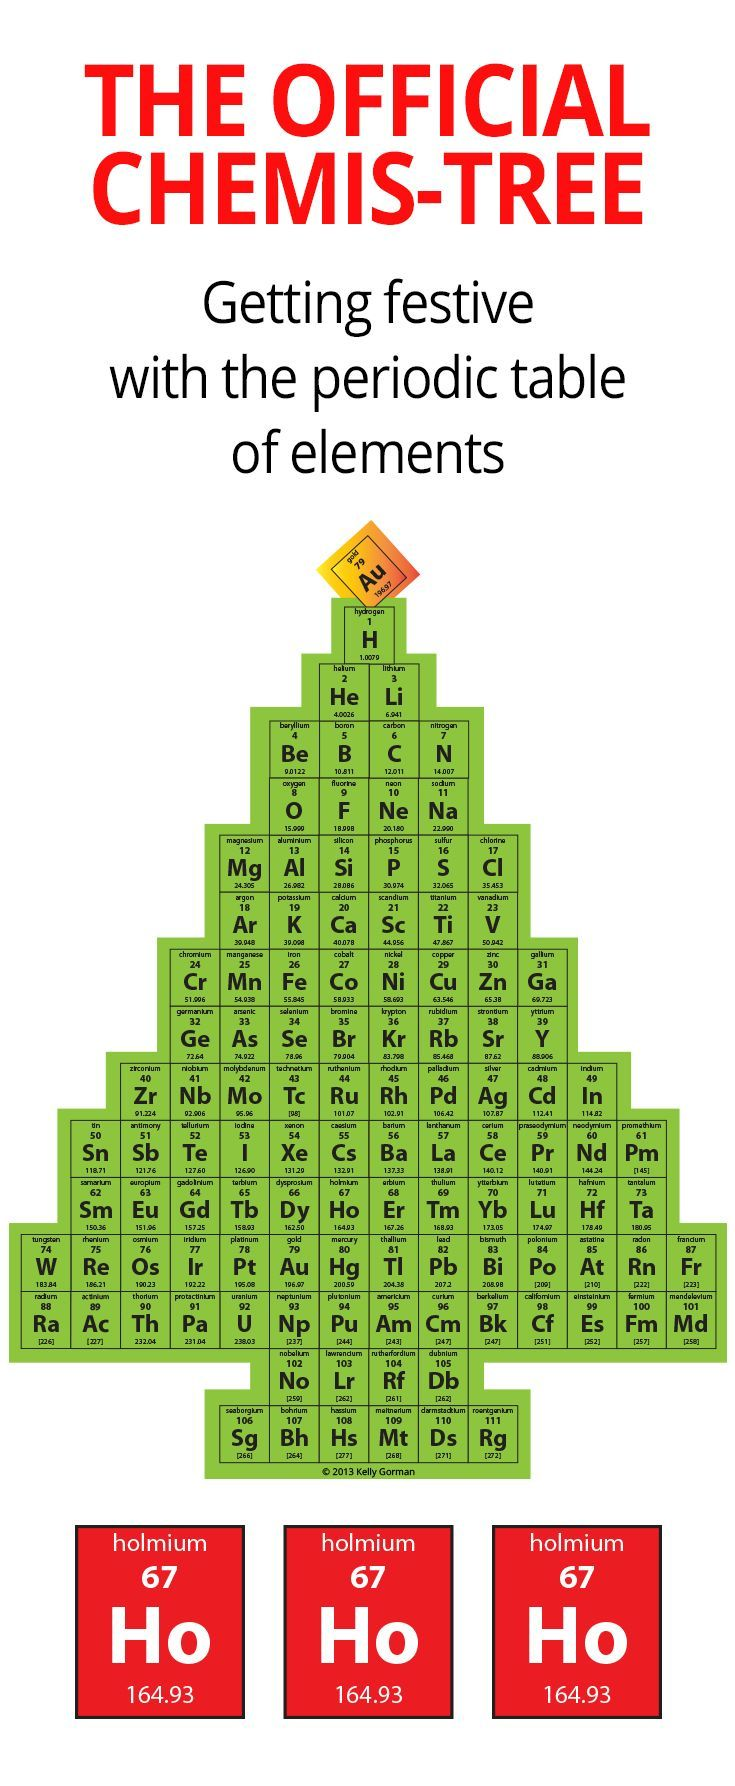 Periodic table in pictures science pinterest periodic table periodic table in pictures science pinterest periodic table chemistry and school gamestrikefo Gallery